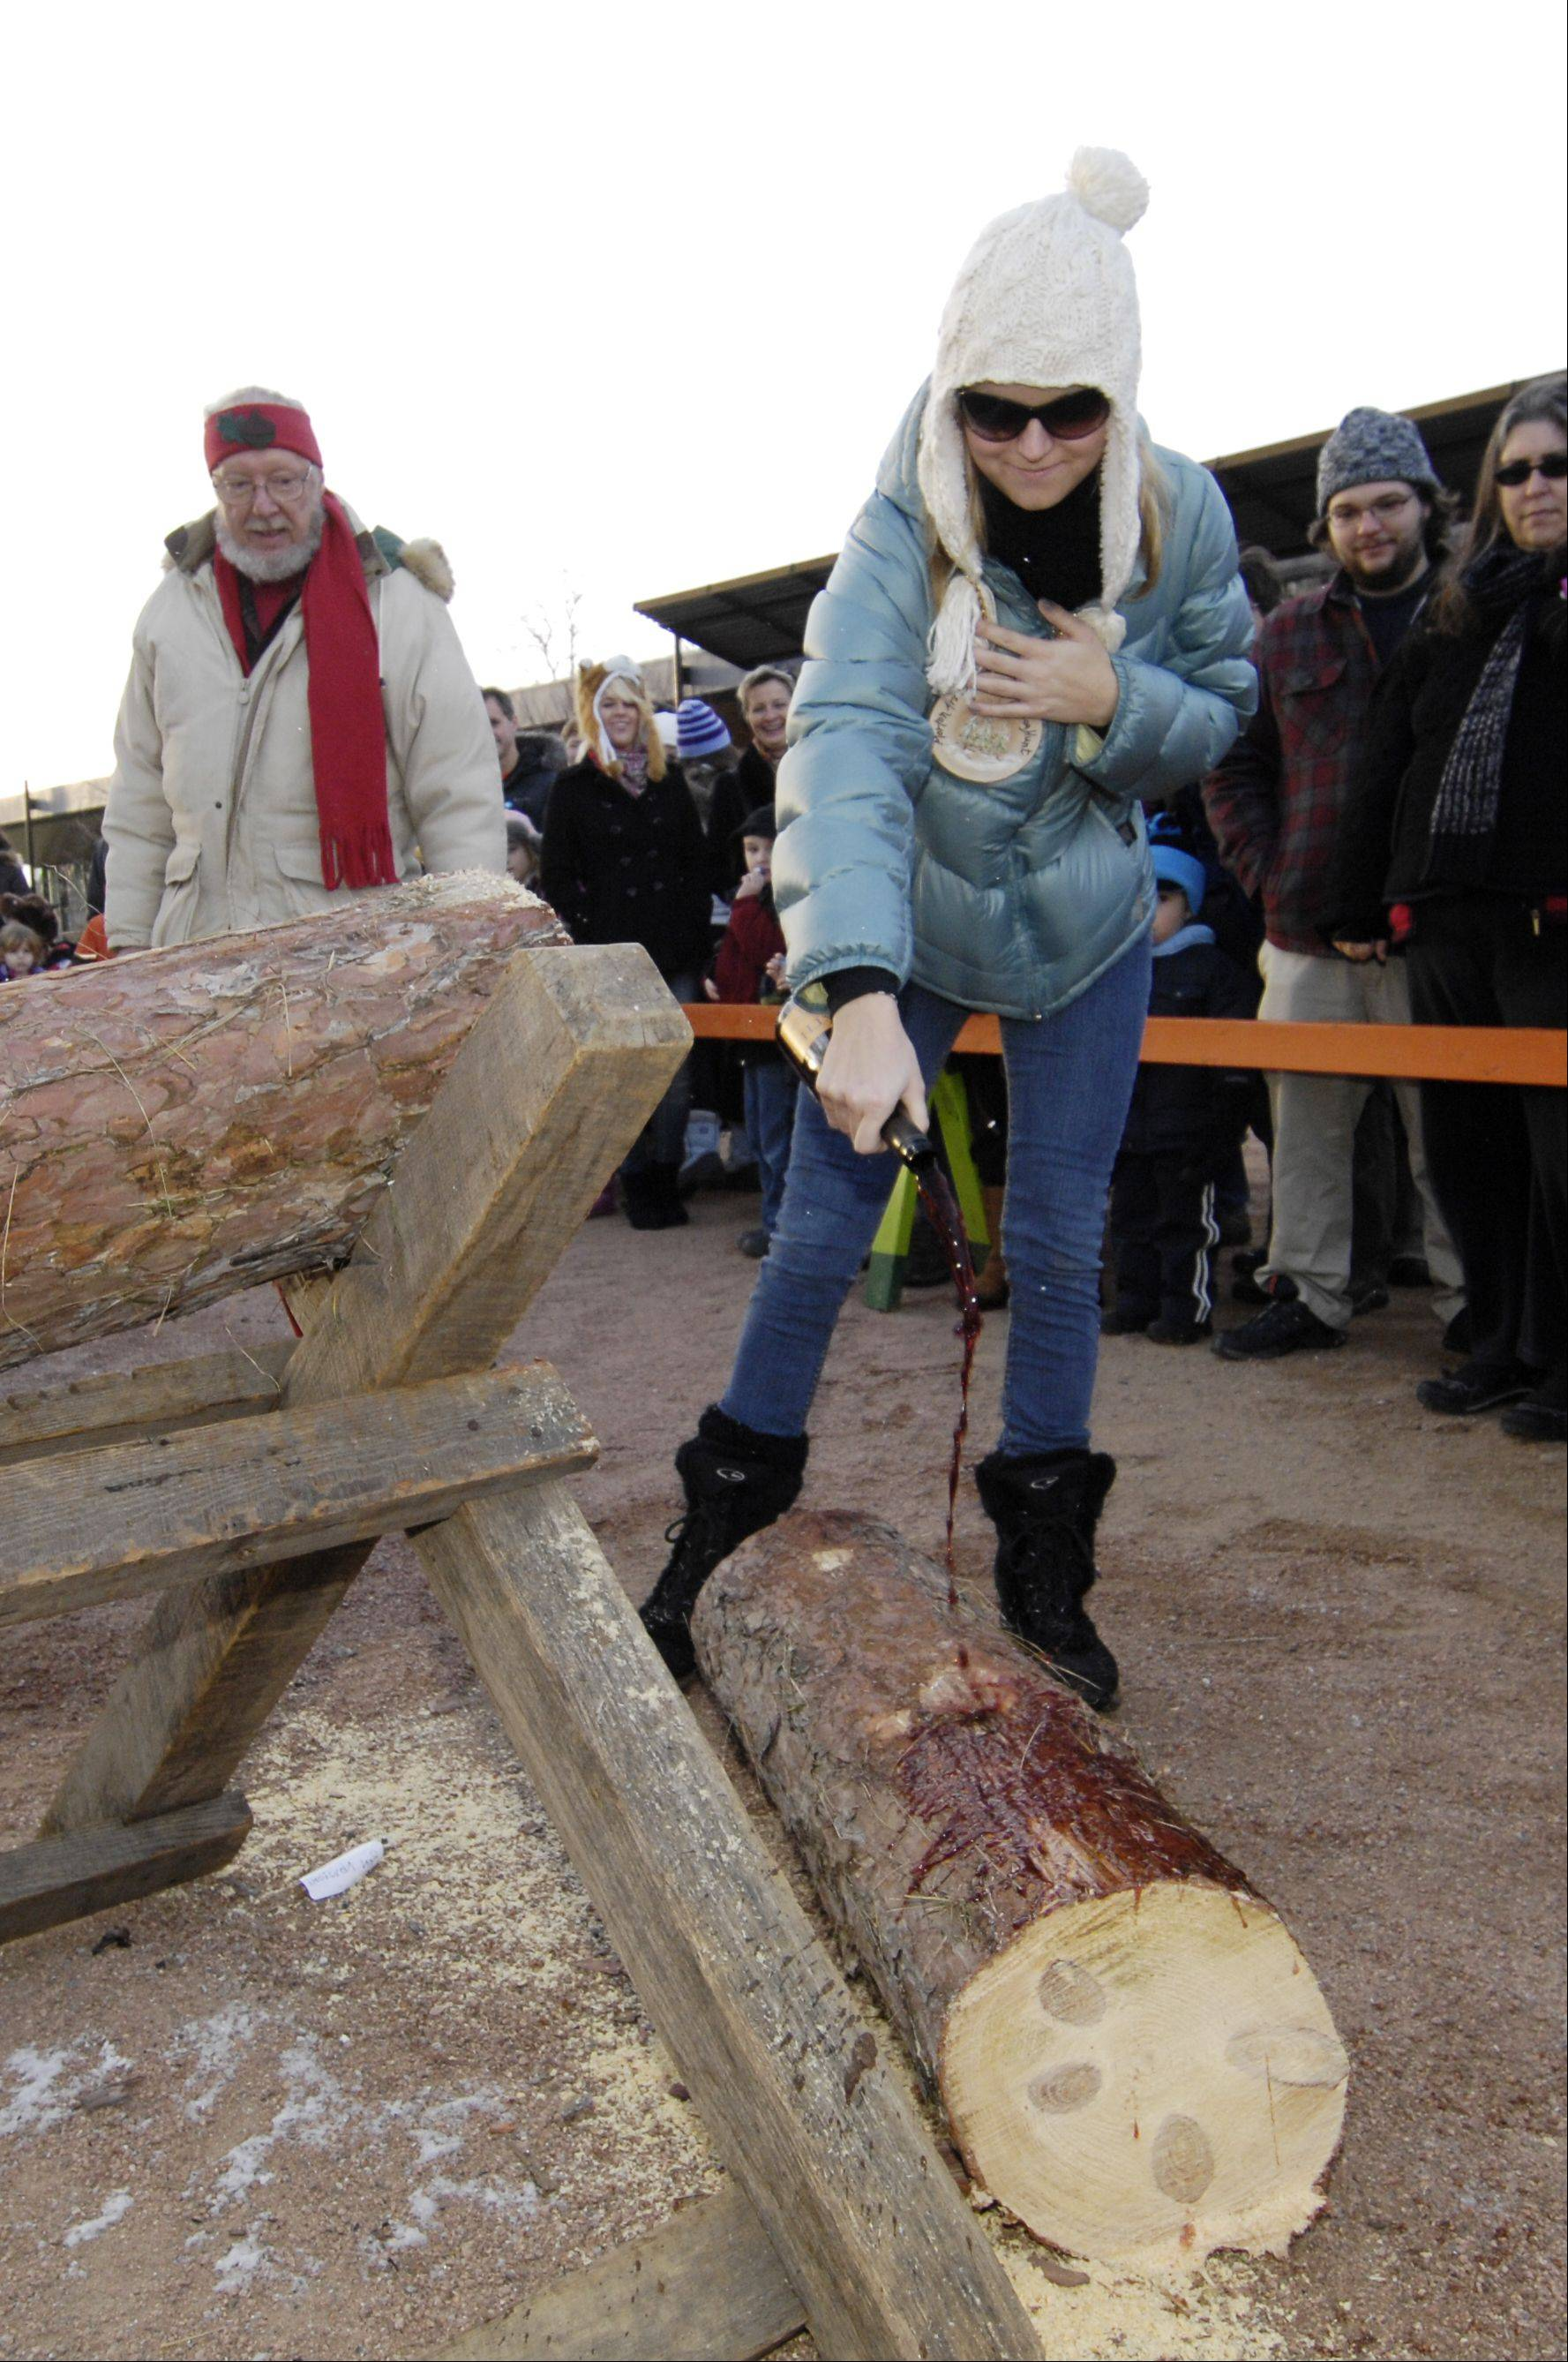 Nikki Knoepfle of Naperville pours the ceremonial wine over half of the Yule Log during The Morton Arboretum 35th annual Hunt for the Yule Log Sunday. Knoepfle and her parents, John and Cristina, found the log by following clues to its location on the arboretum grounds.